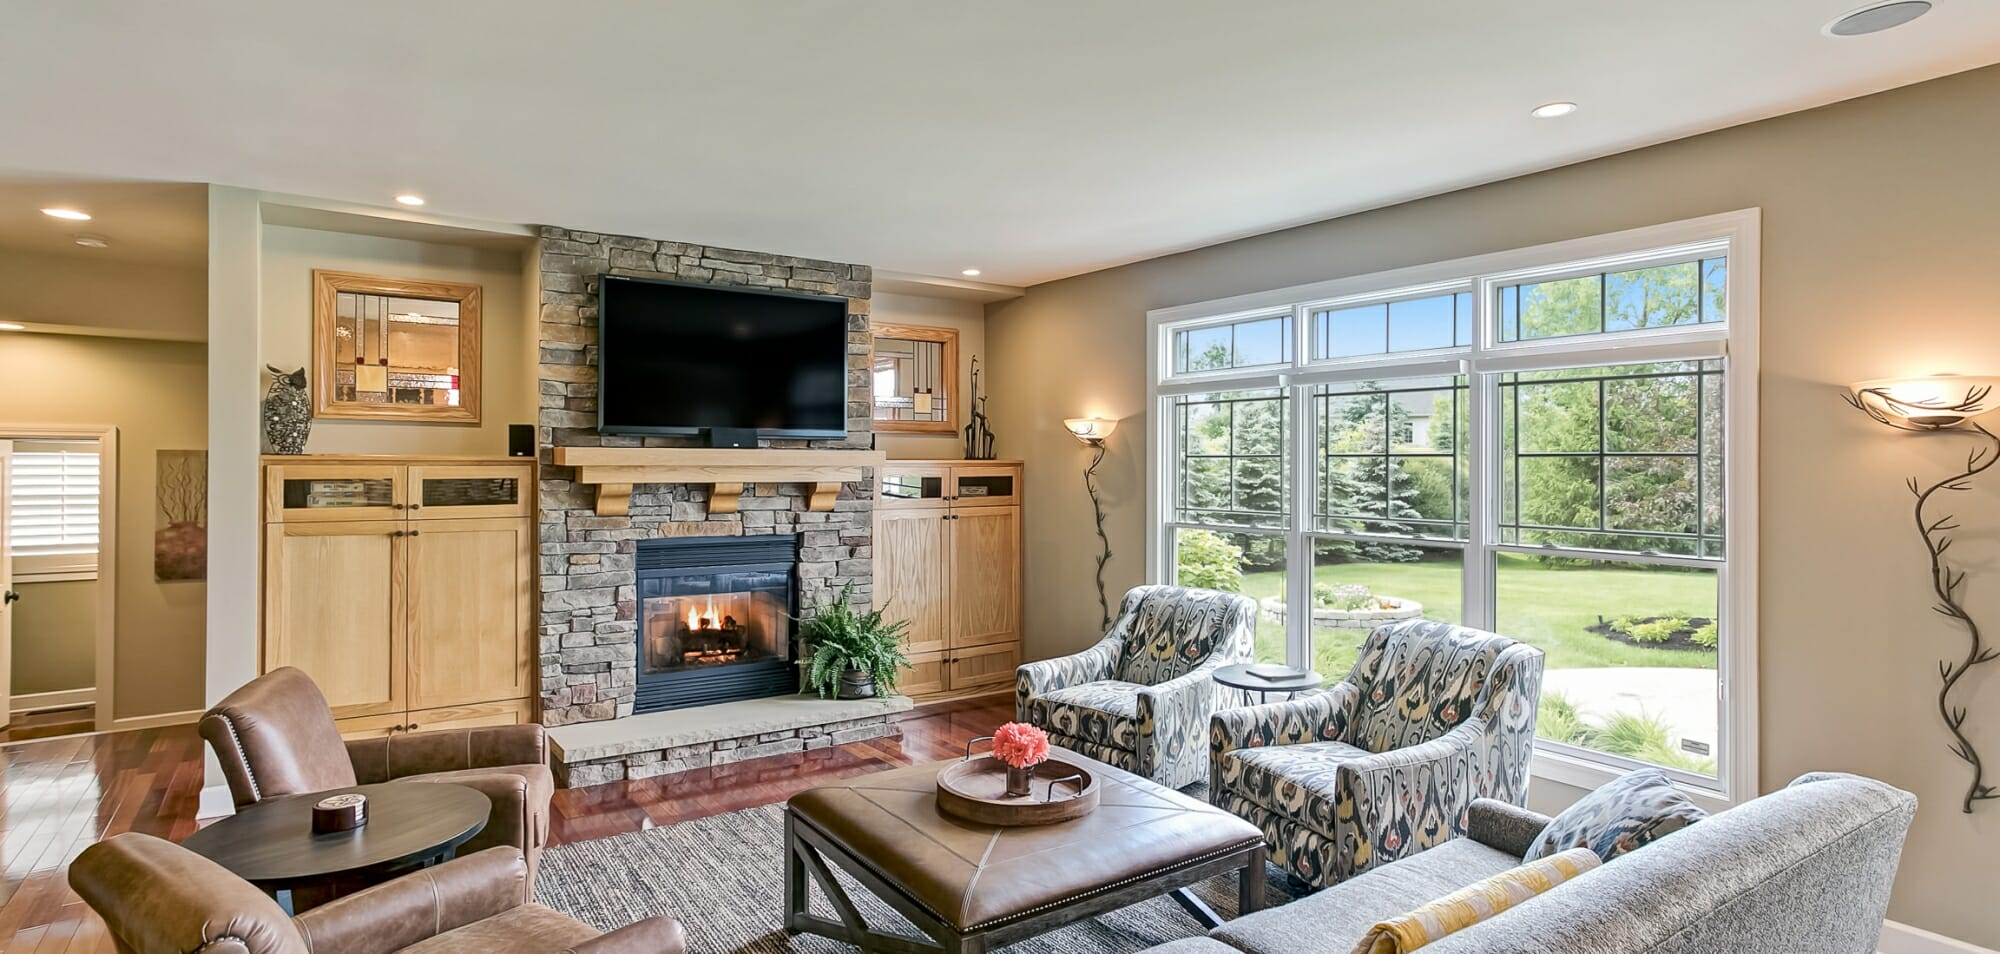 Living room with Stone fireplace custom built-ins